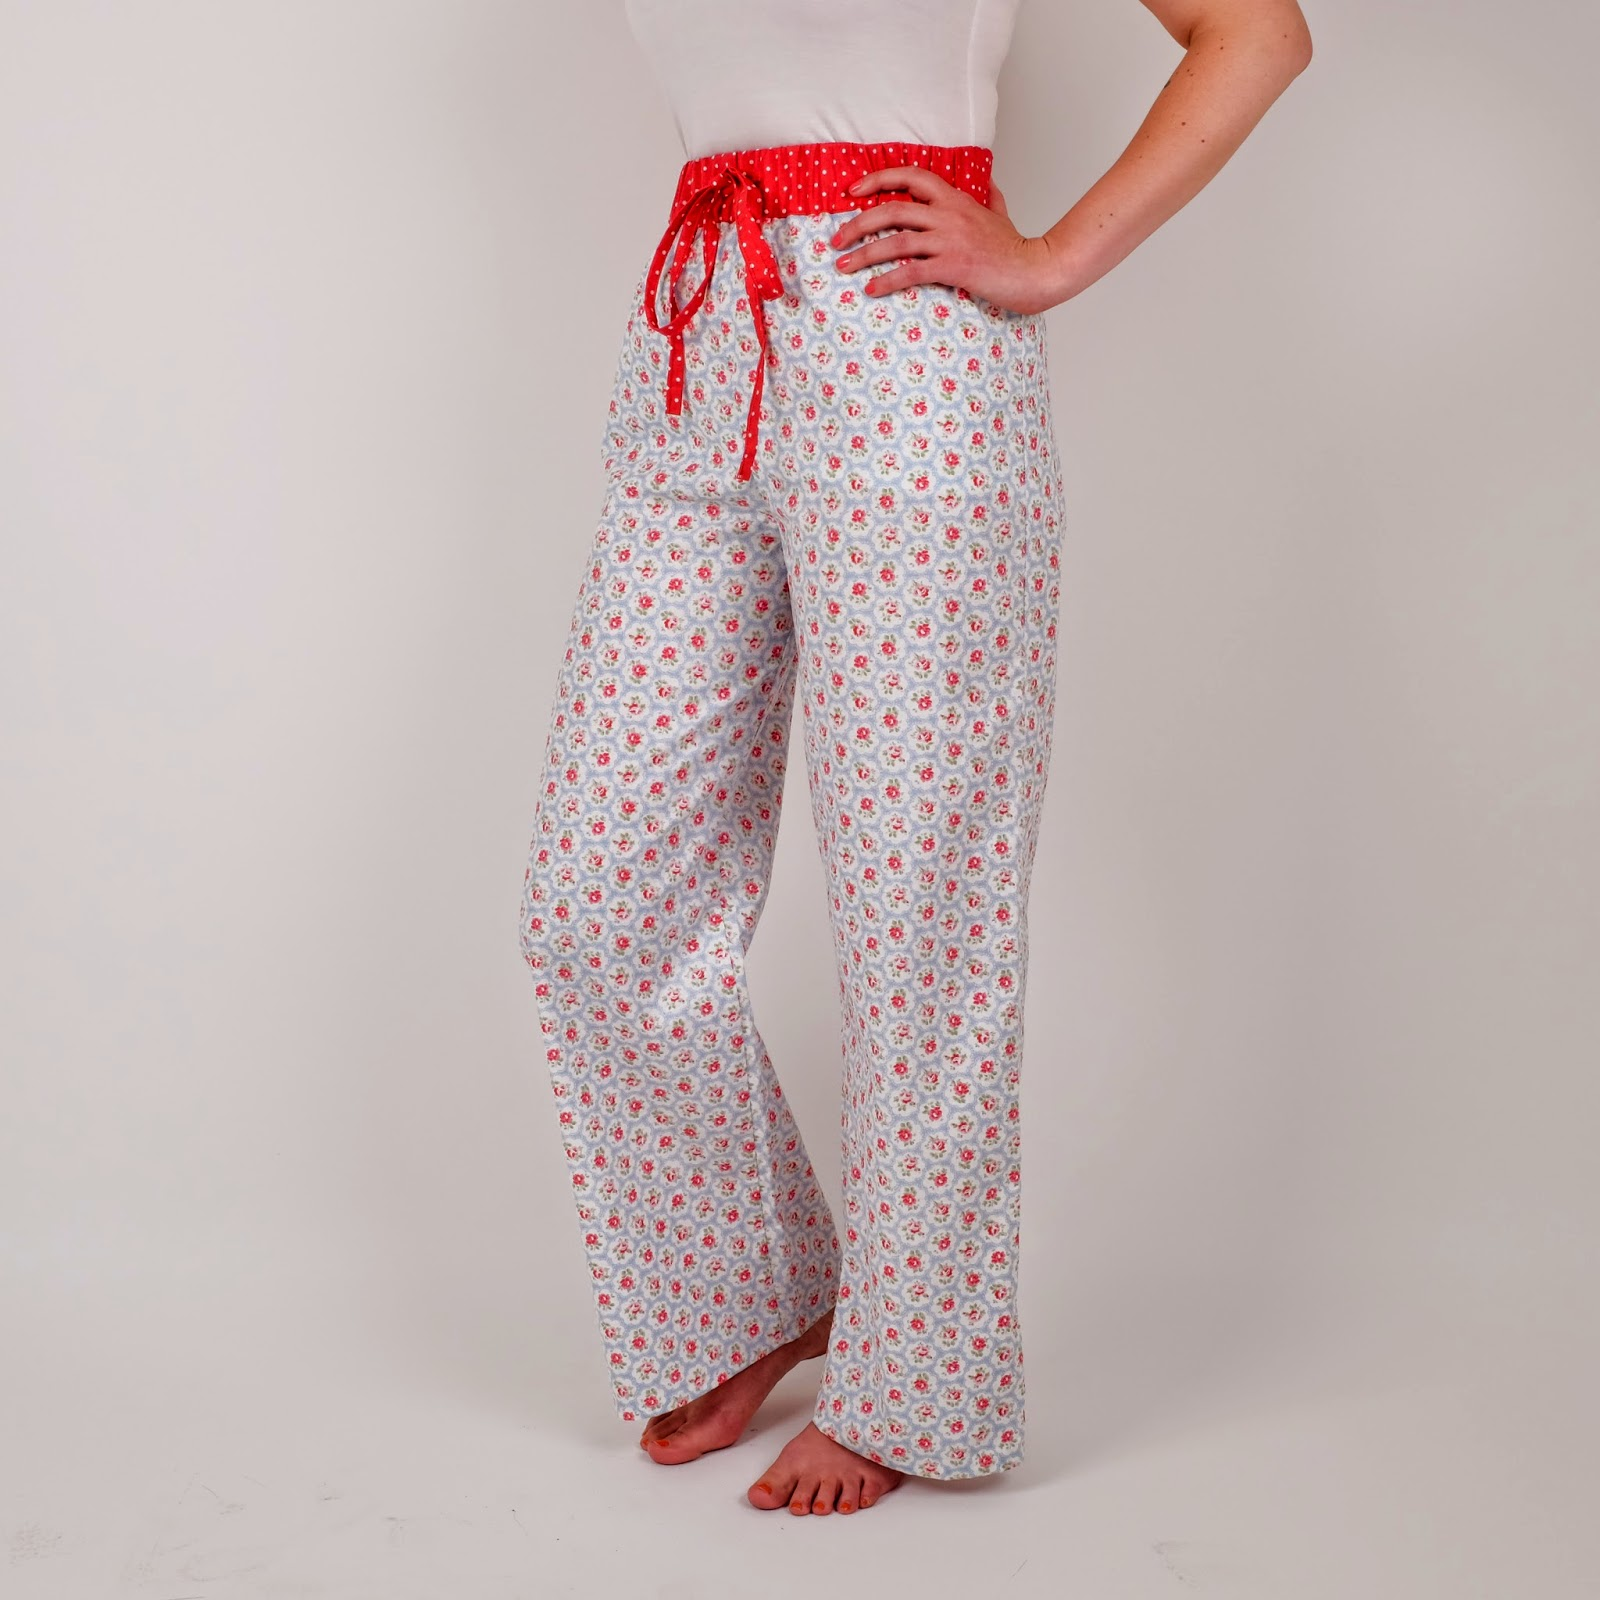 youll leave our course with a pair of pj bottoms like this but in your chosen fabric we used cath kidston cotton 4250 for 4 hours of expert and very